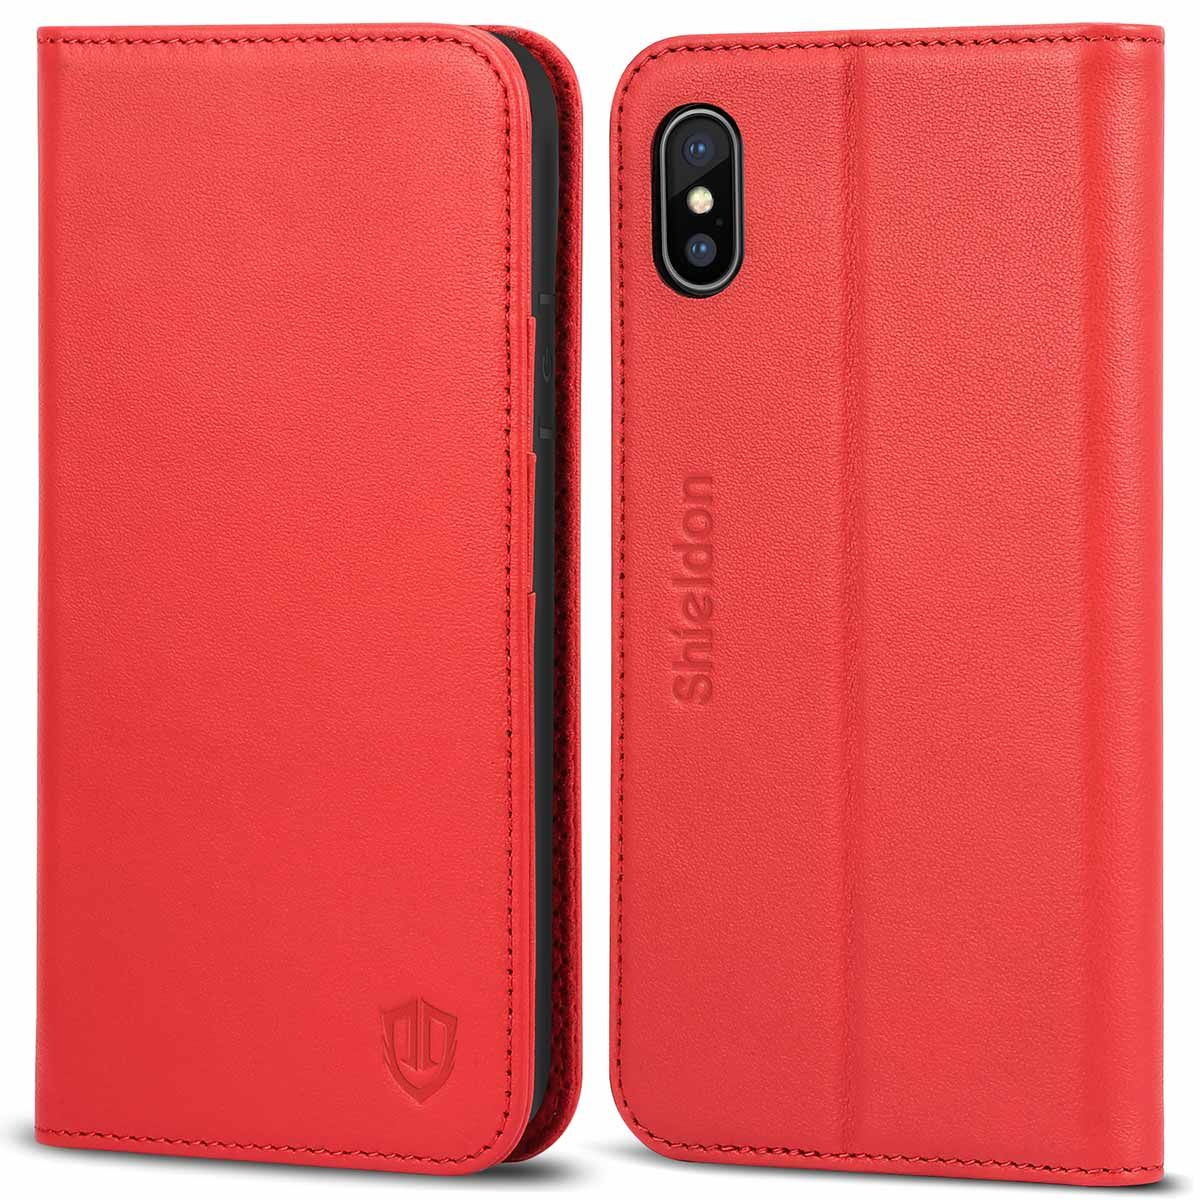 purchase cheap 051e8 8052e SHIELDON iPhone X Genuine Leather Wallet Case, Magnetic Closure, Flip  Cover, Kickstand